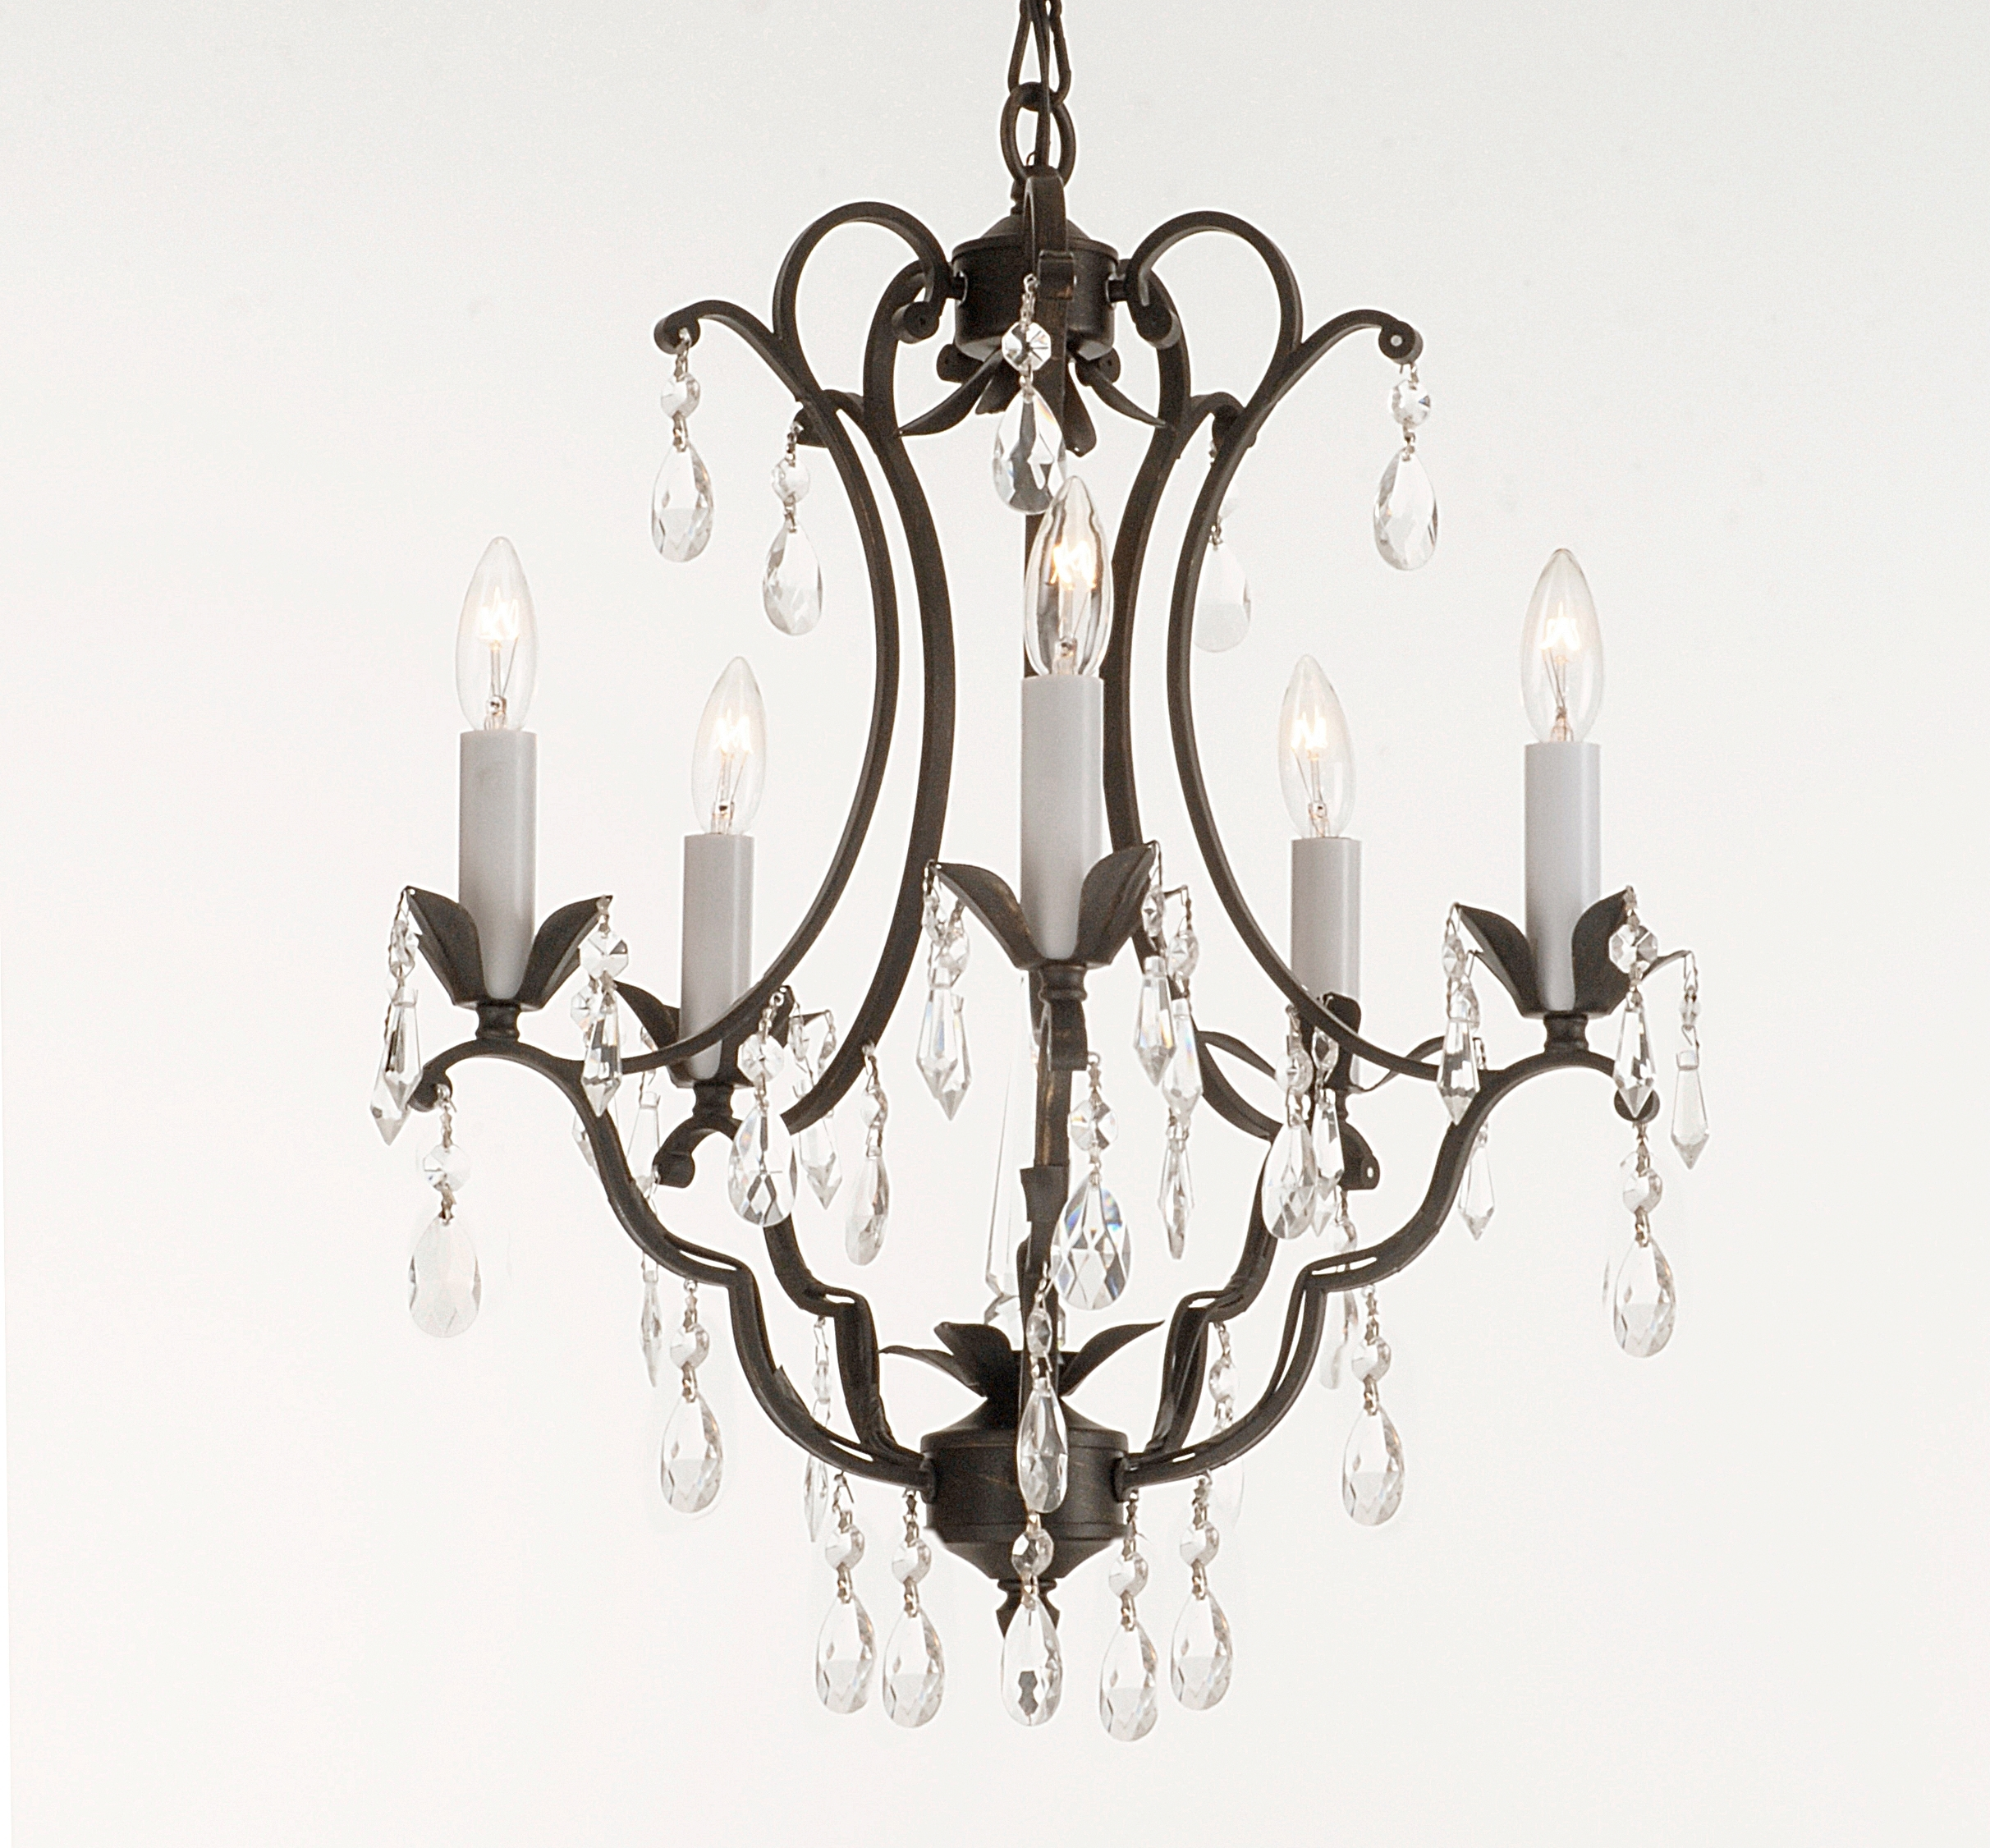 Preferred Light : Furniture Vintage Look Modern Black Wrought Iron Chandeliers Within Vintage Wrought Iron Chandelier (View 10 of 20)